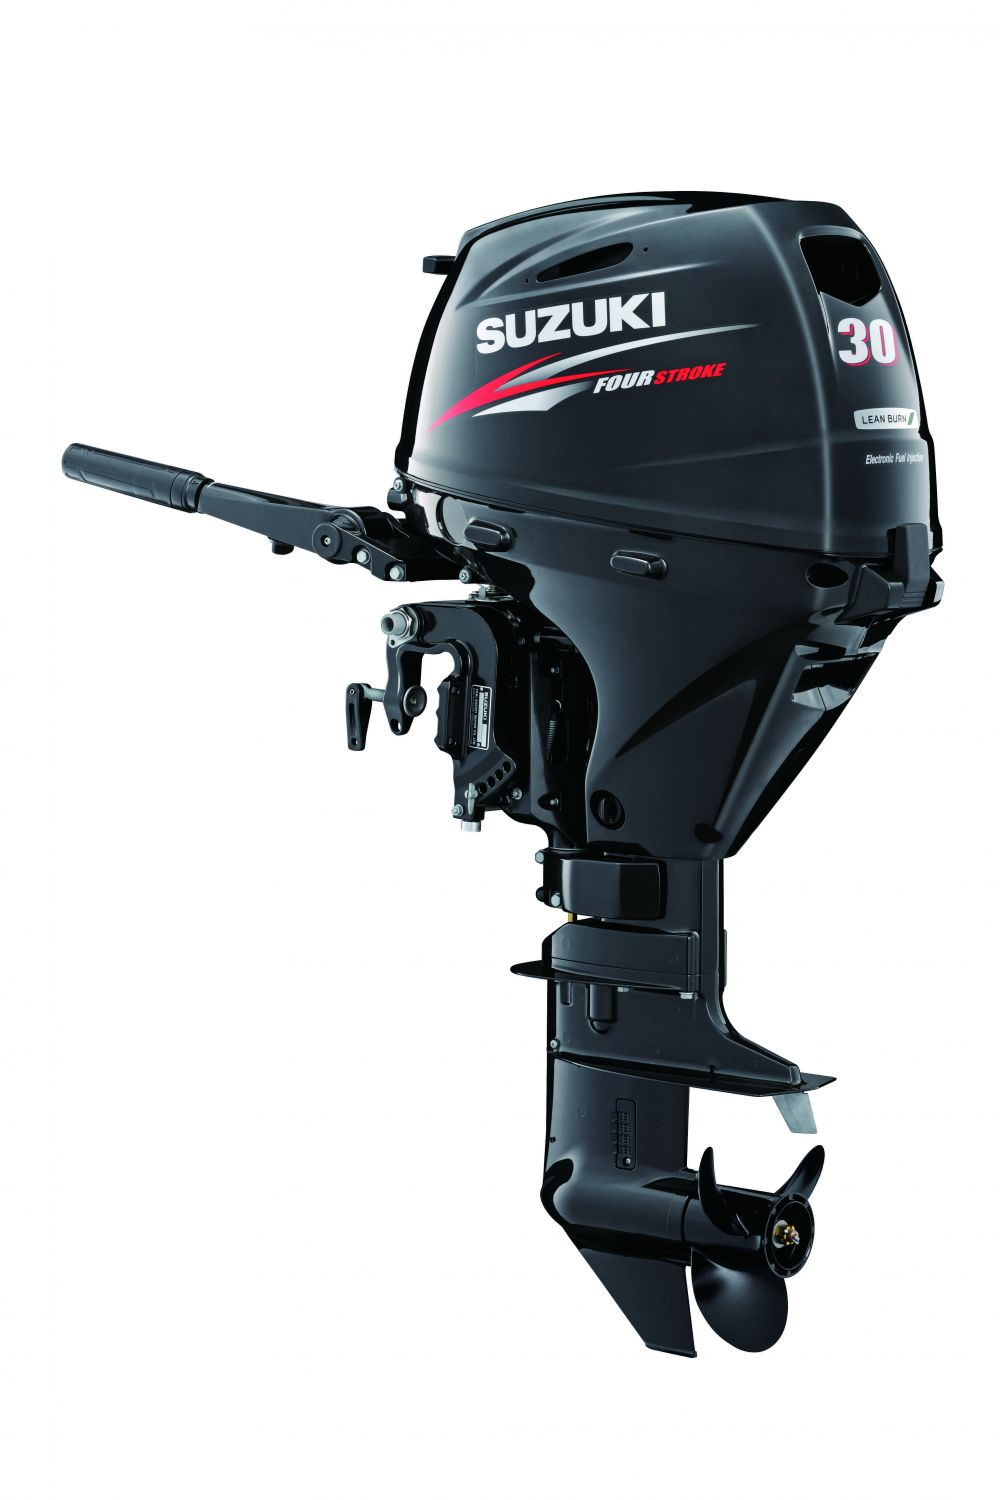 Suzuki DF30A Four Stroke Marine outboard engine